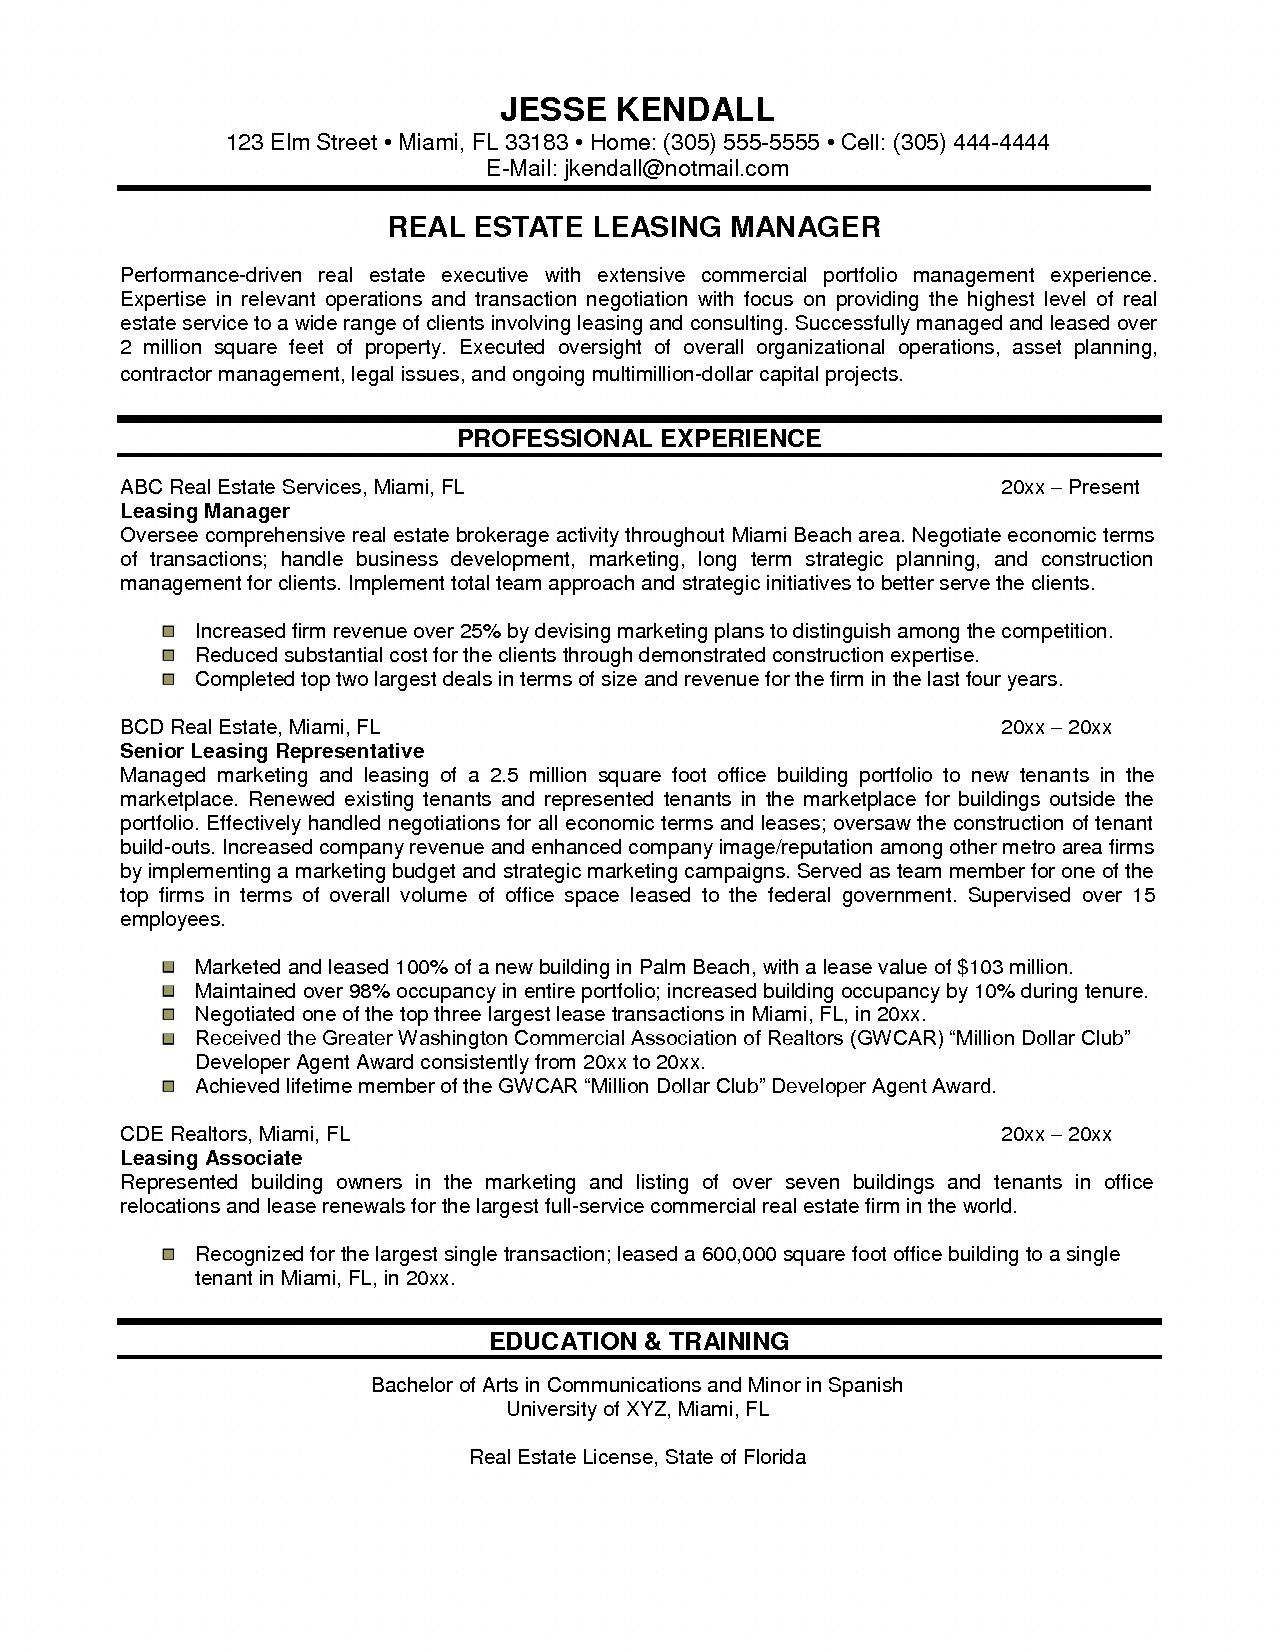 Restaurant General Manager Resume Commercial Property Manager Resume Samples  Building Manager